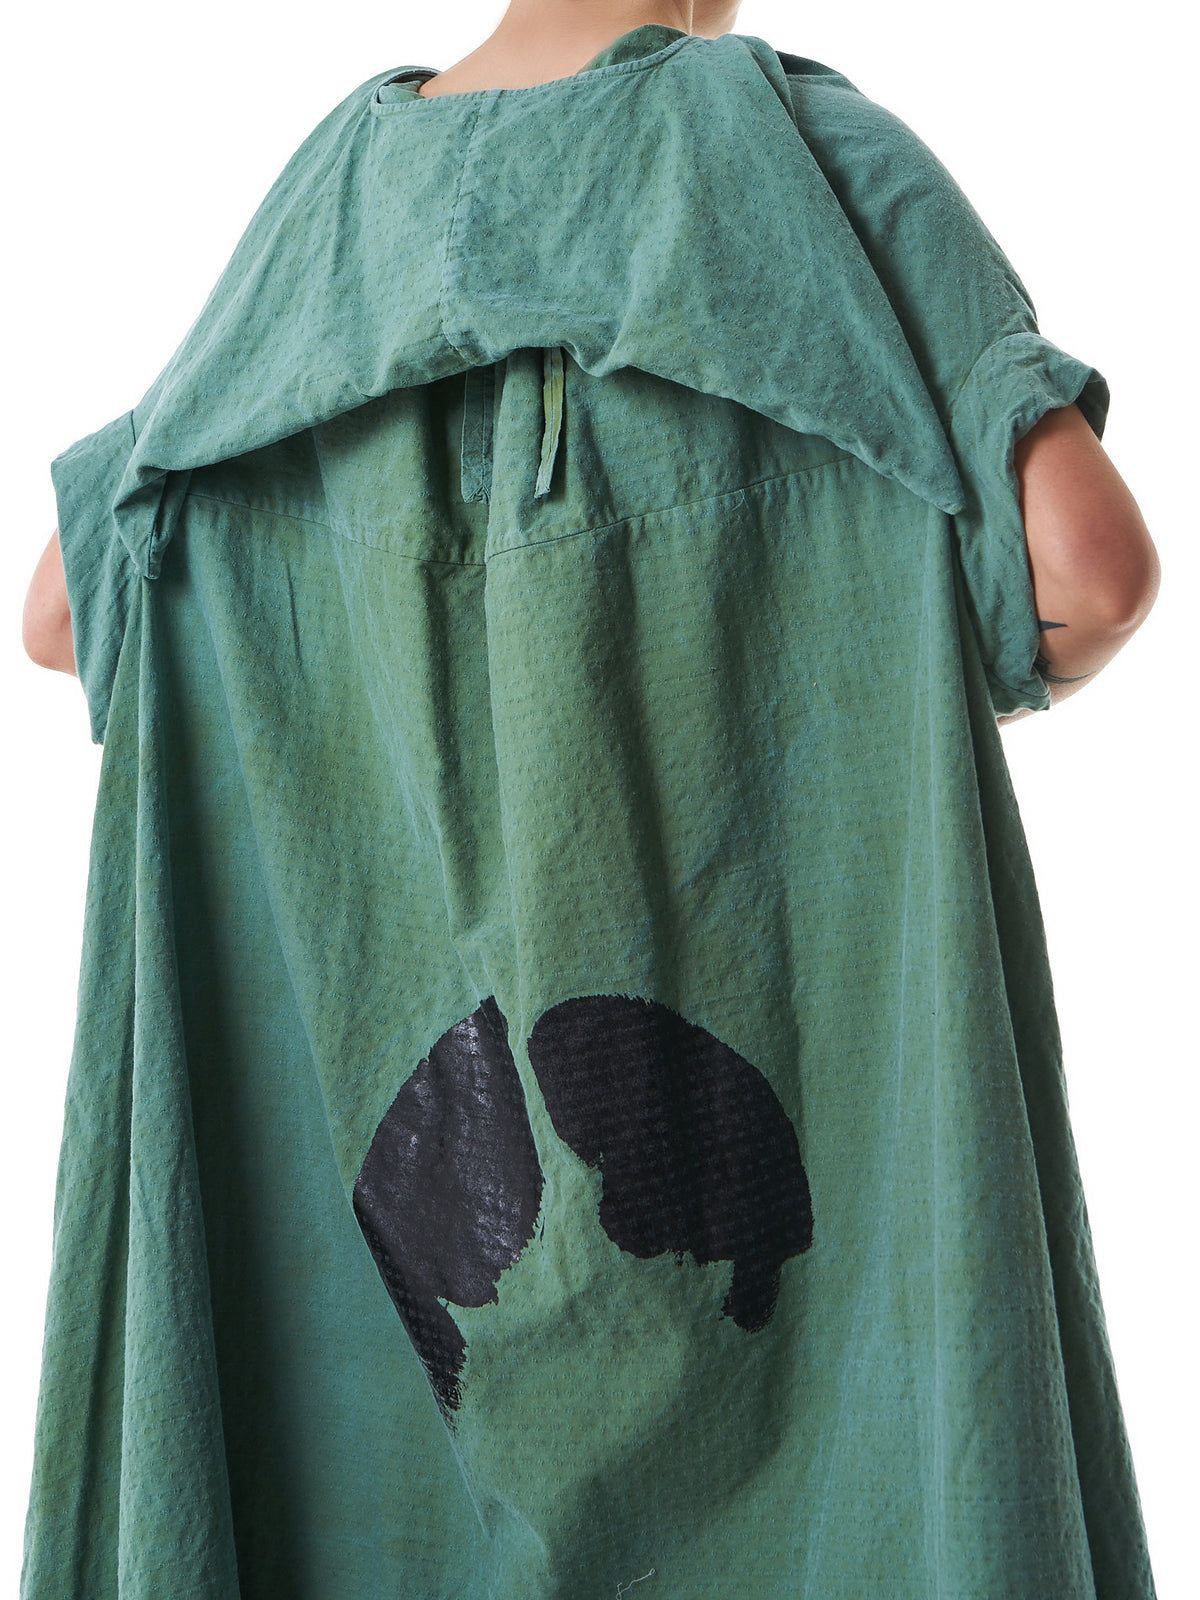 Structured Full-Length Dress (OPBWHM1050-GARDEN-GREEN) - H. Lorenzo